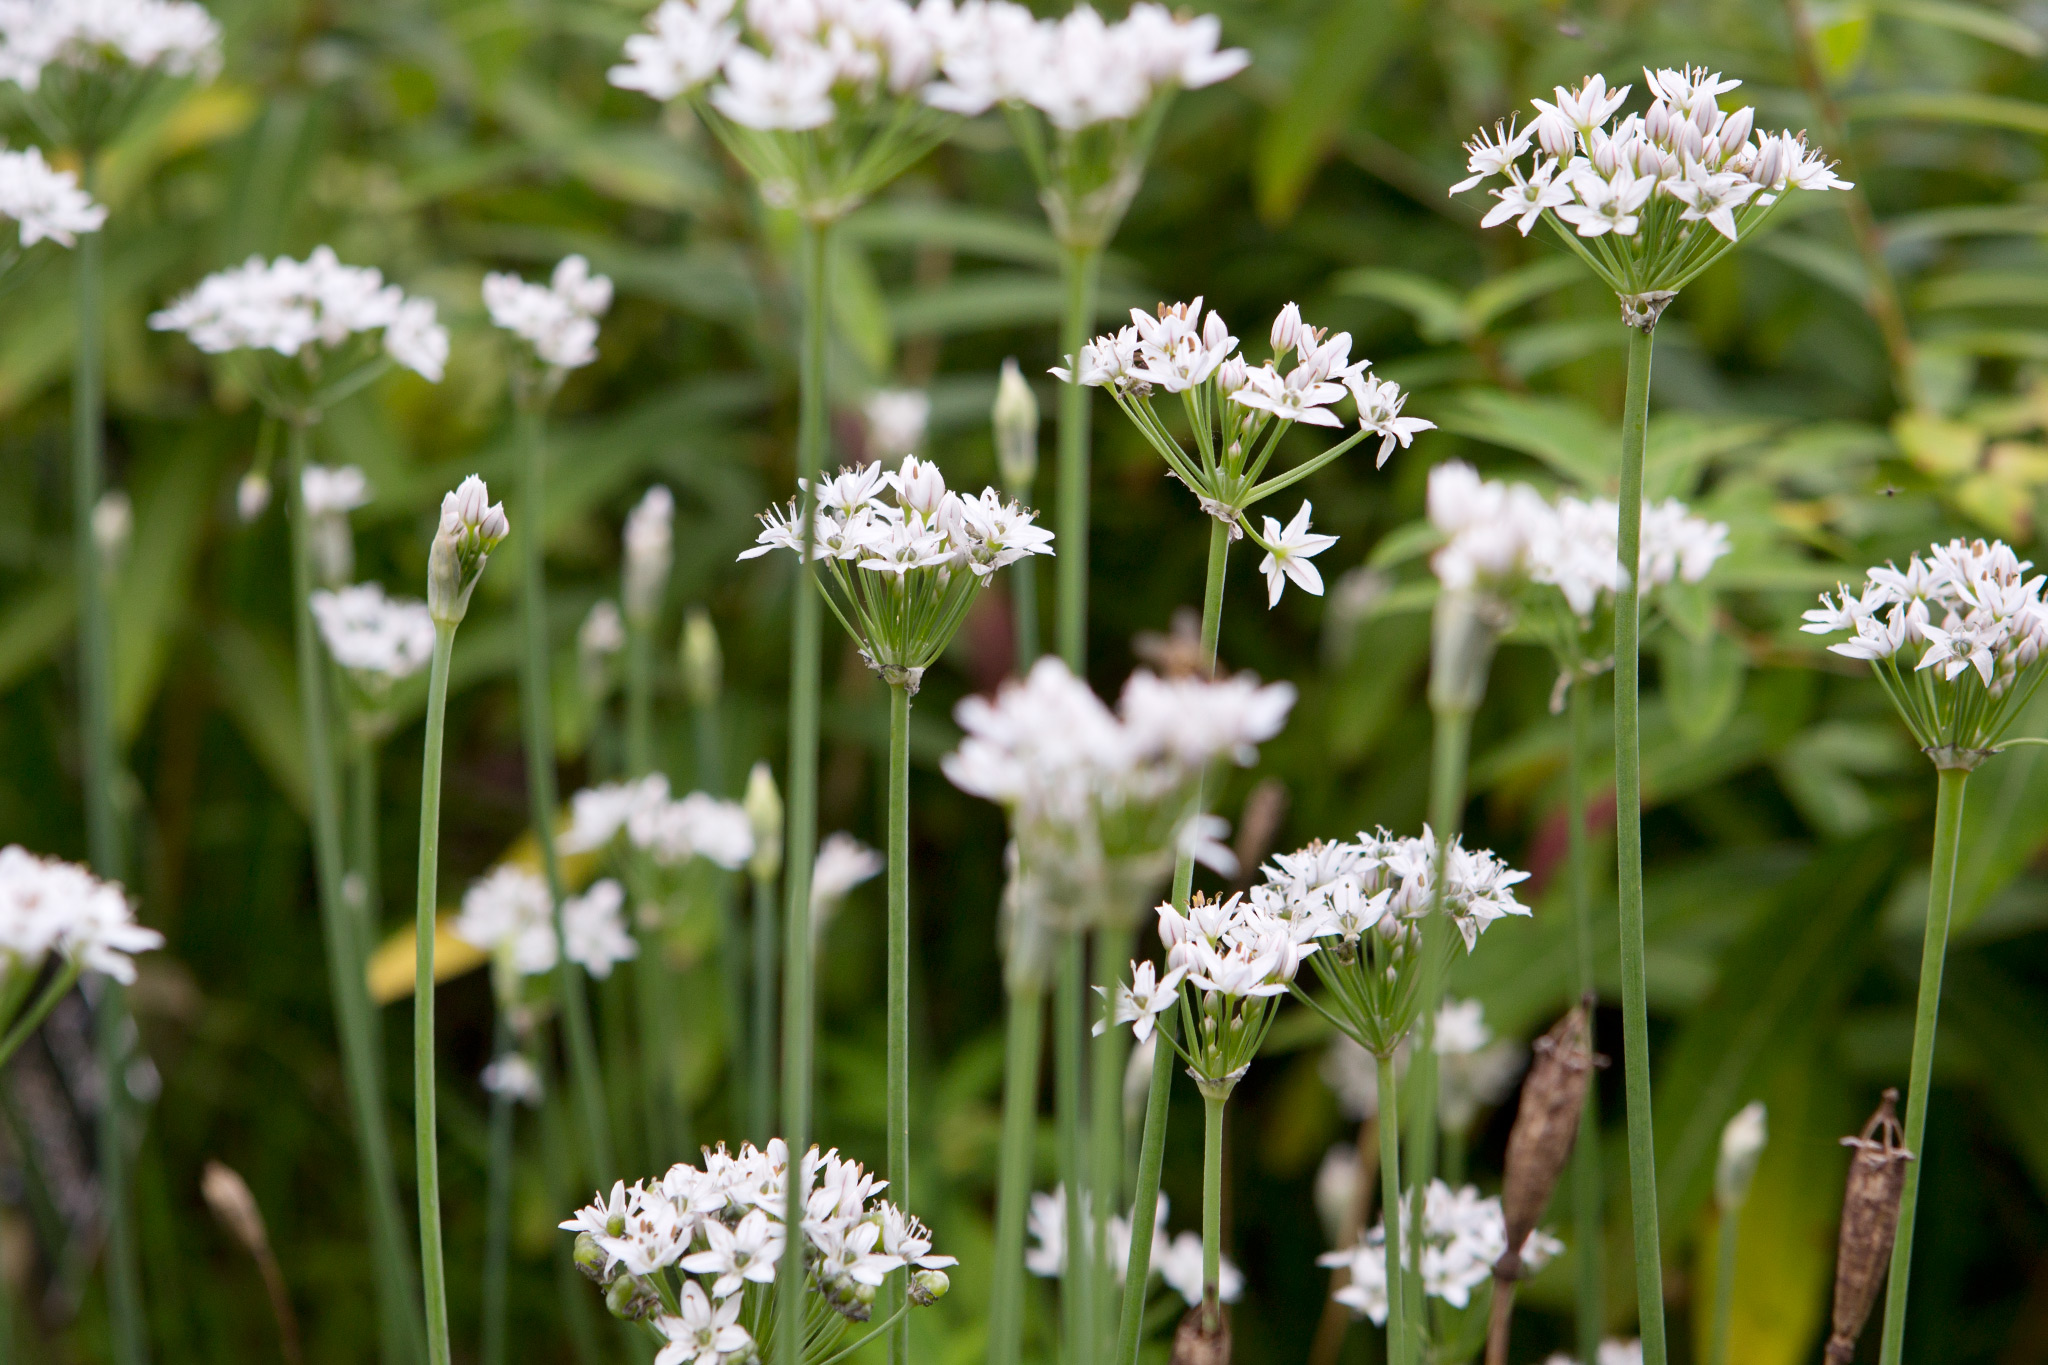 allium-tuberosum-at-the-savill-garden-2